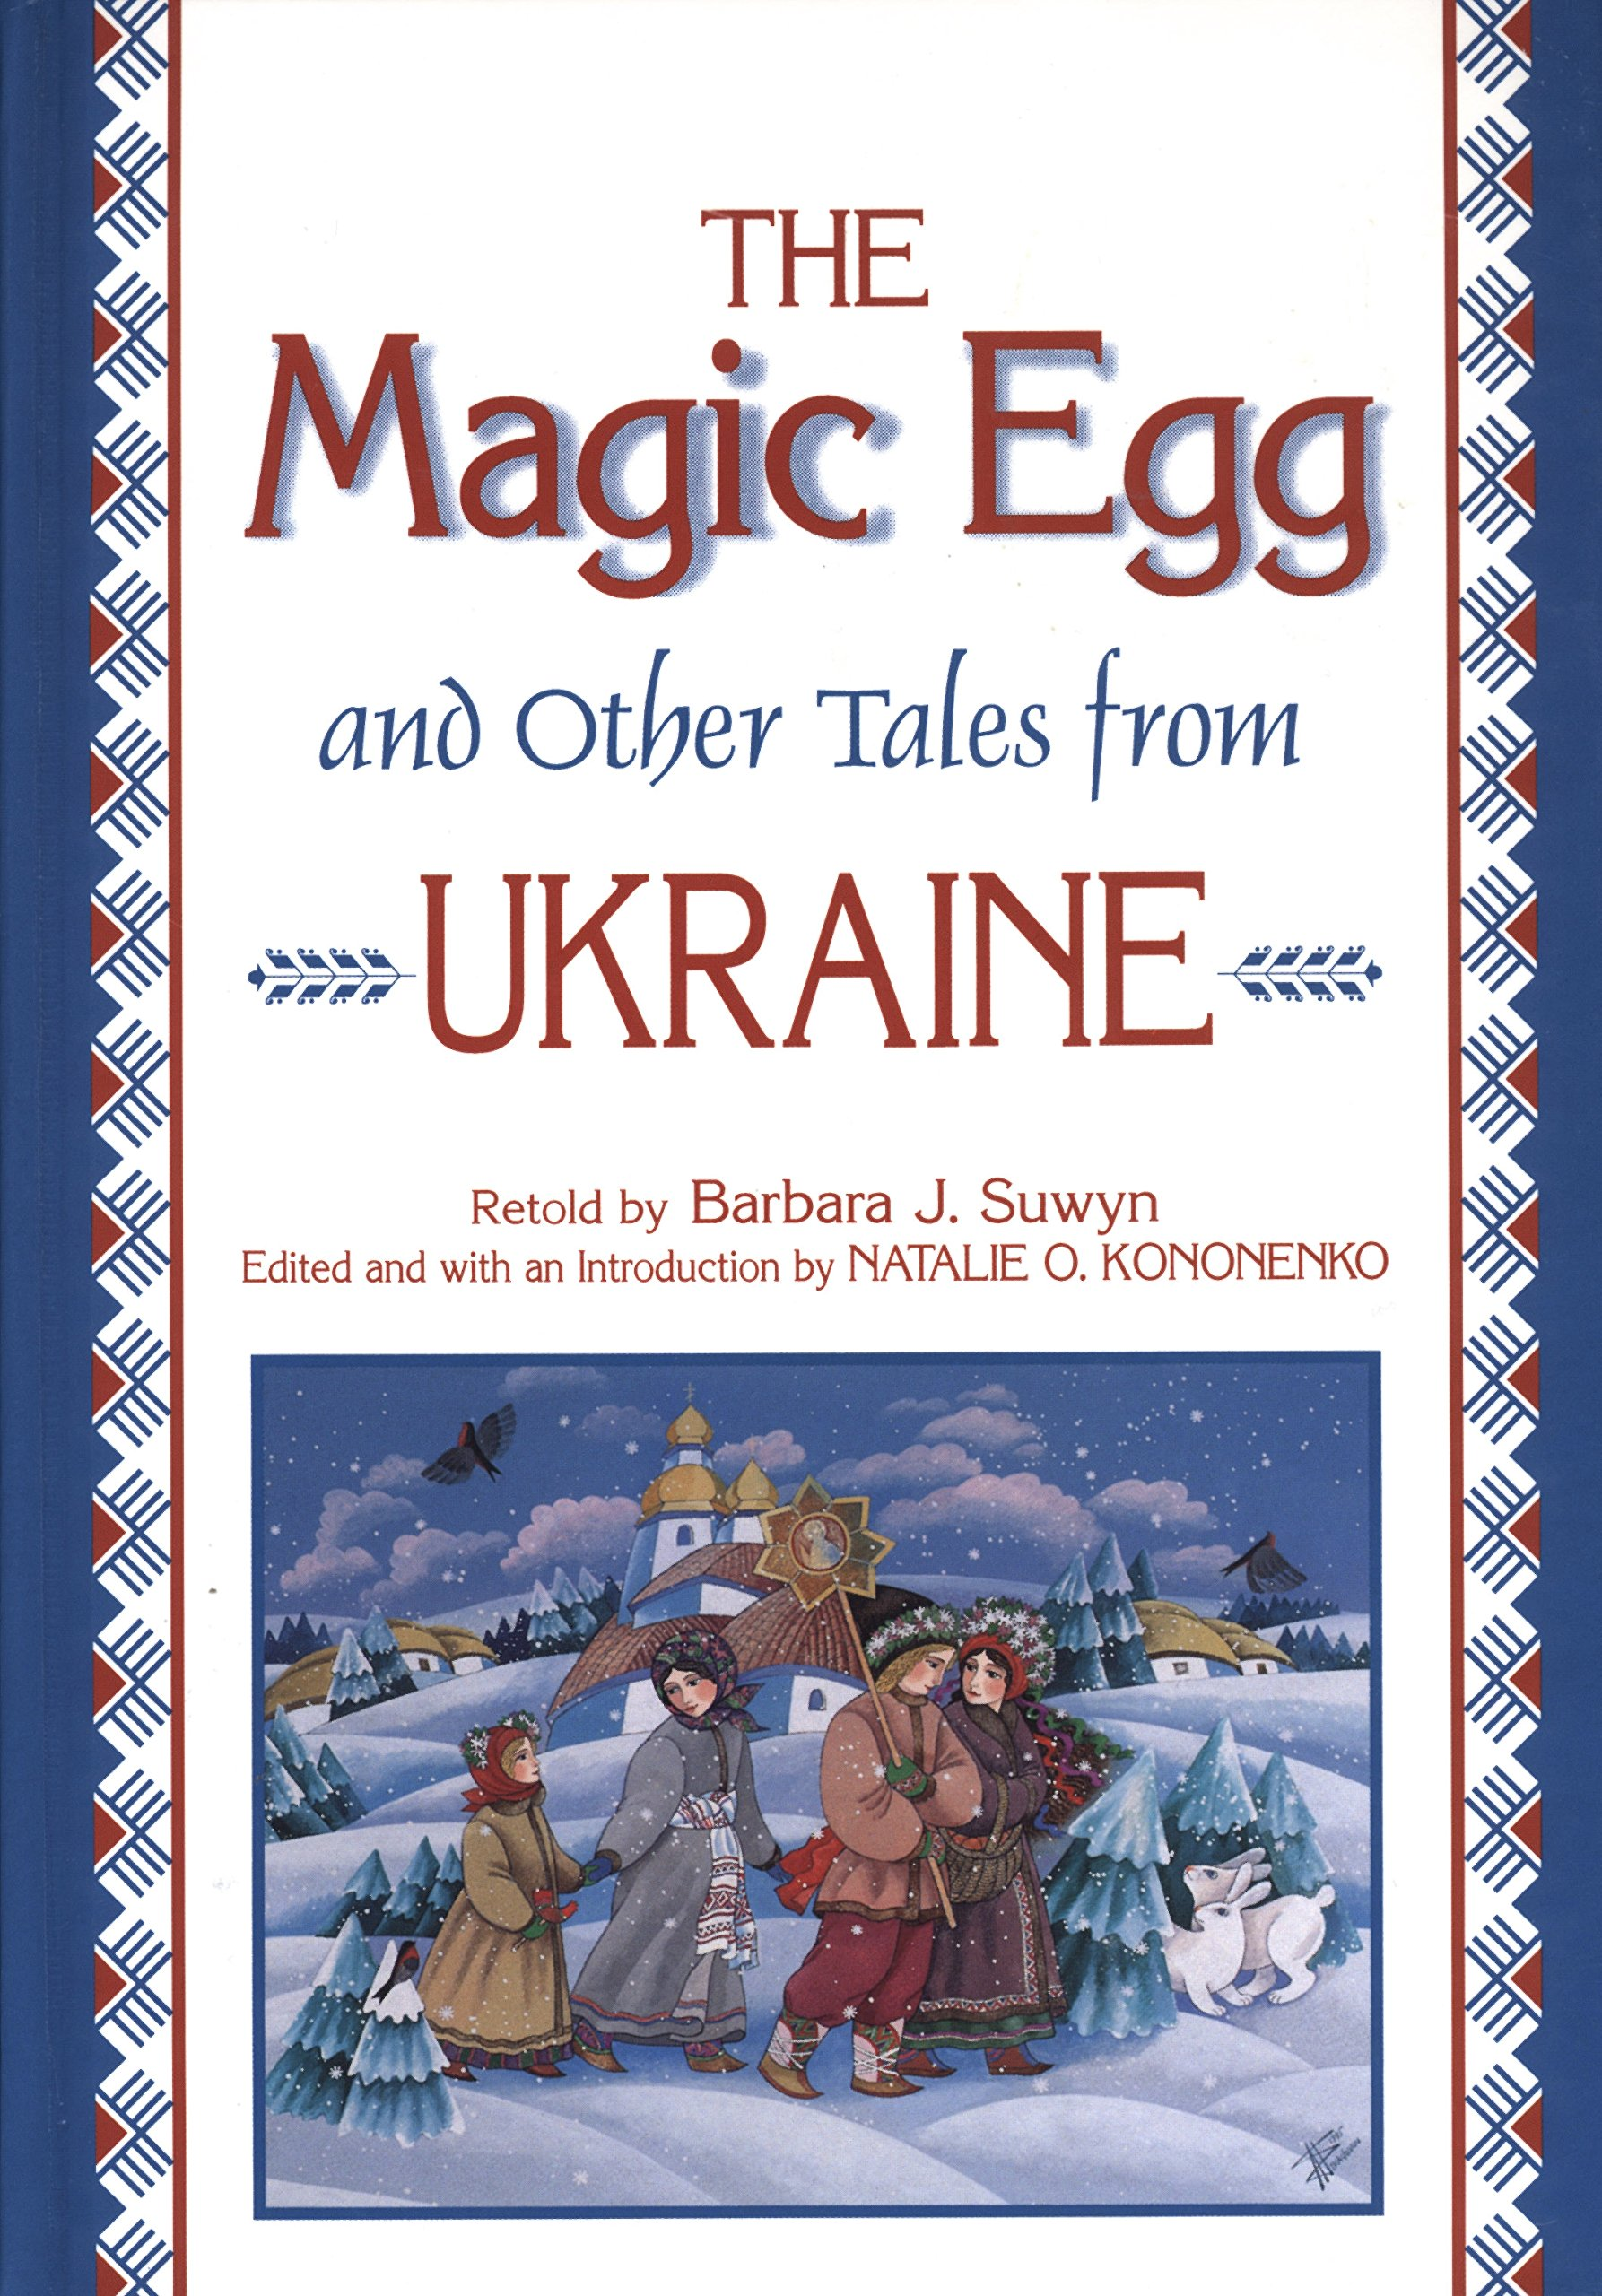 Amazon.com: The Magic Egg and Other Tales from Ukraine (World ...